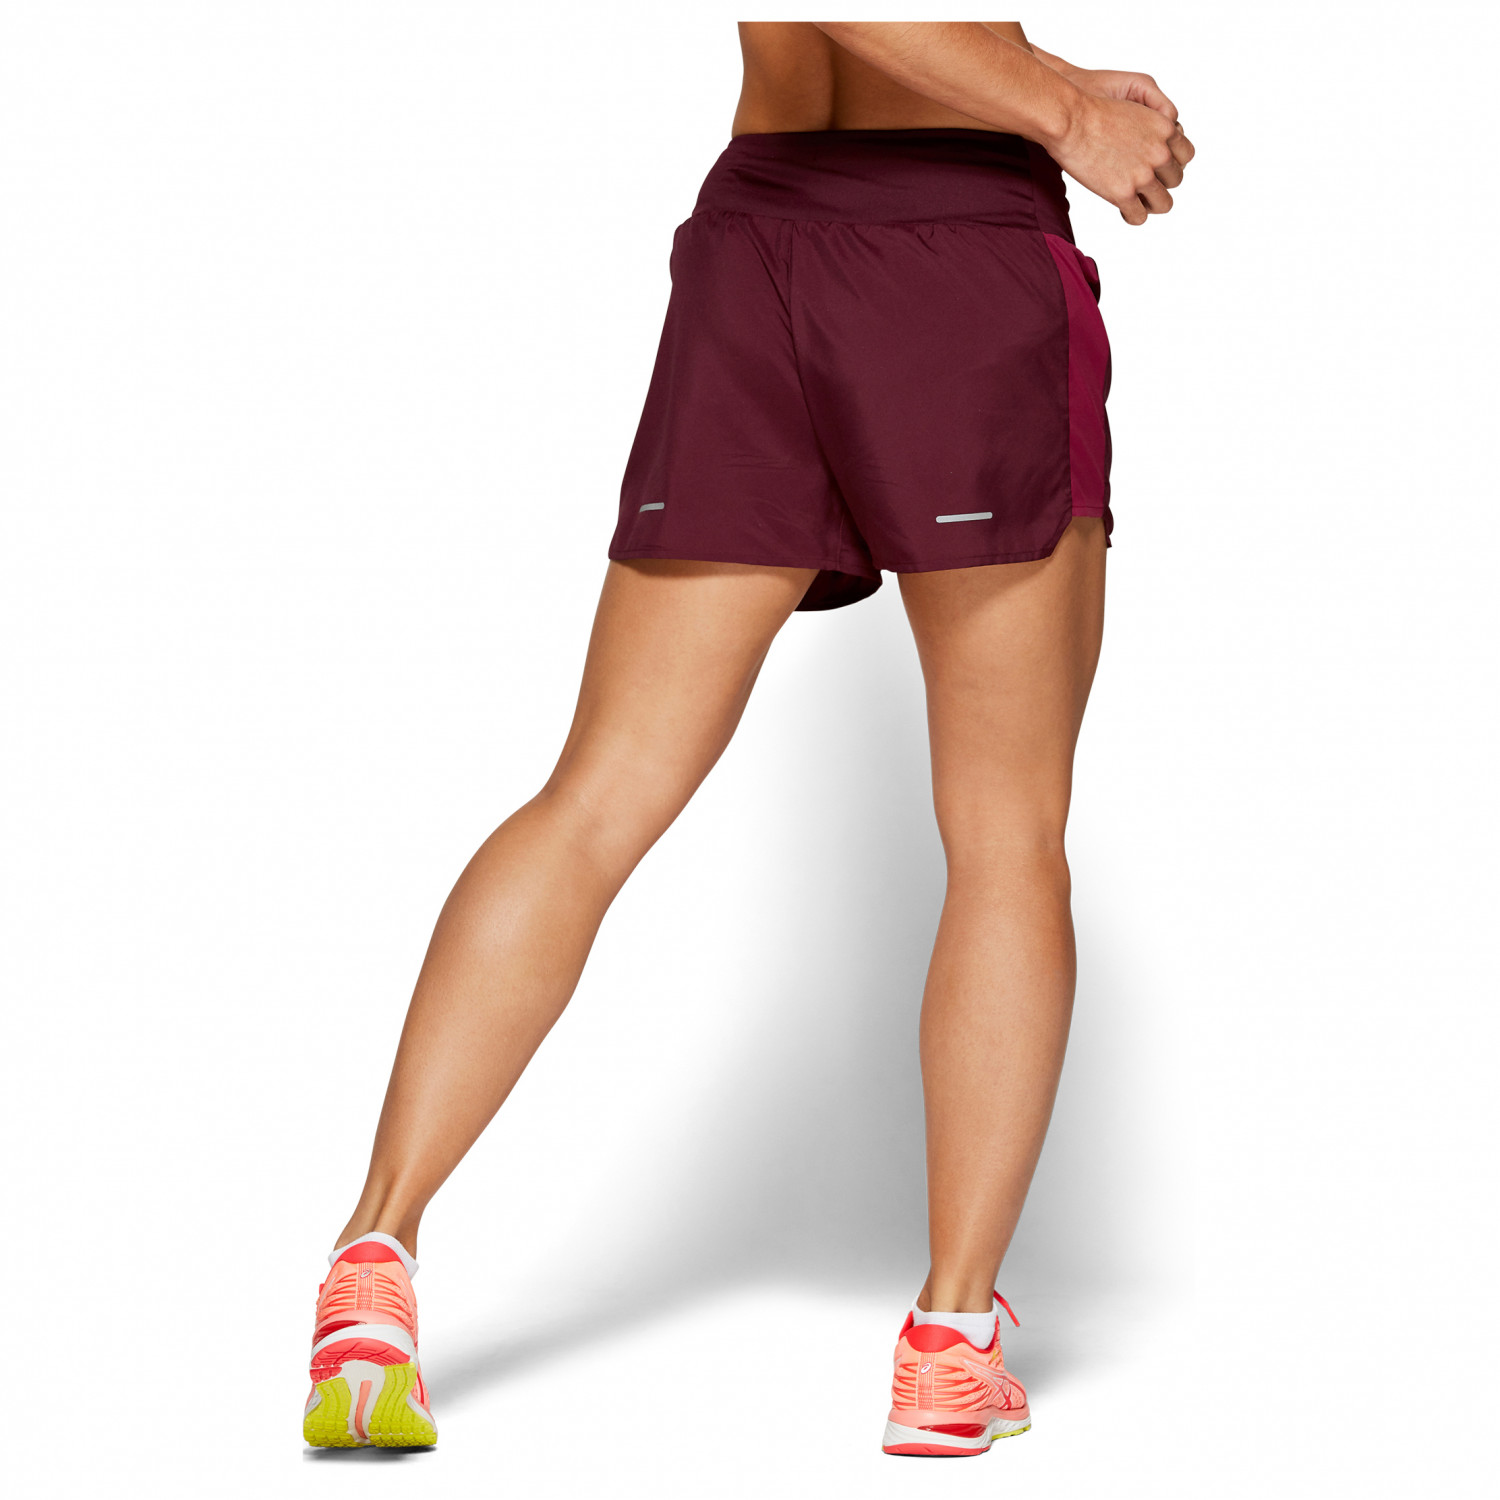 Asics 3.5In Short - Running trousers Women's | Buy online ...